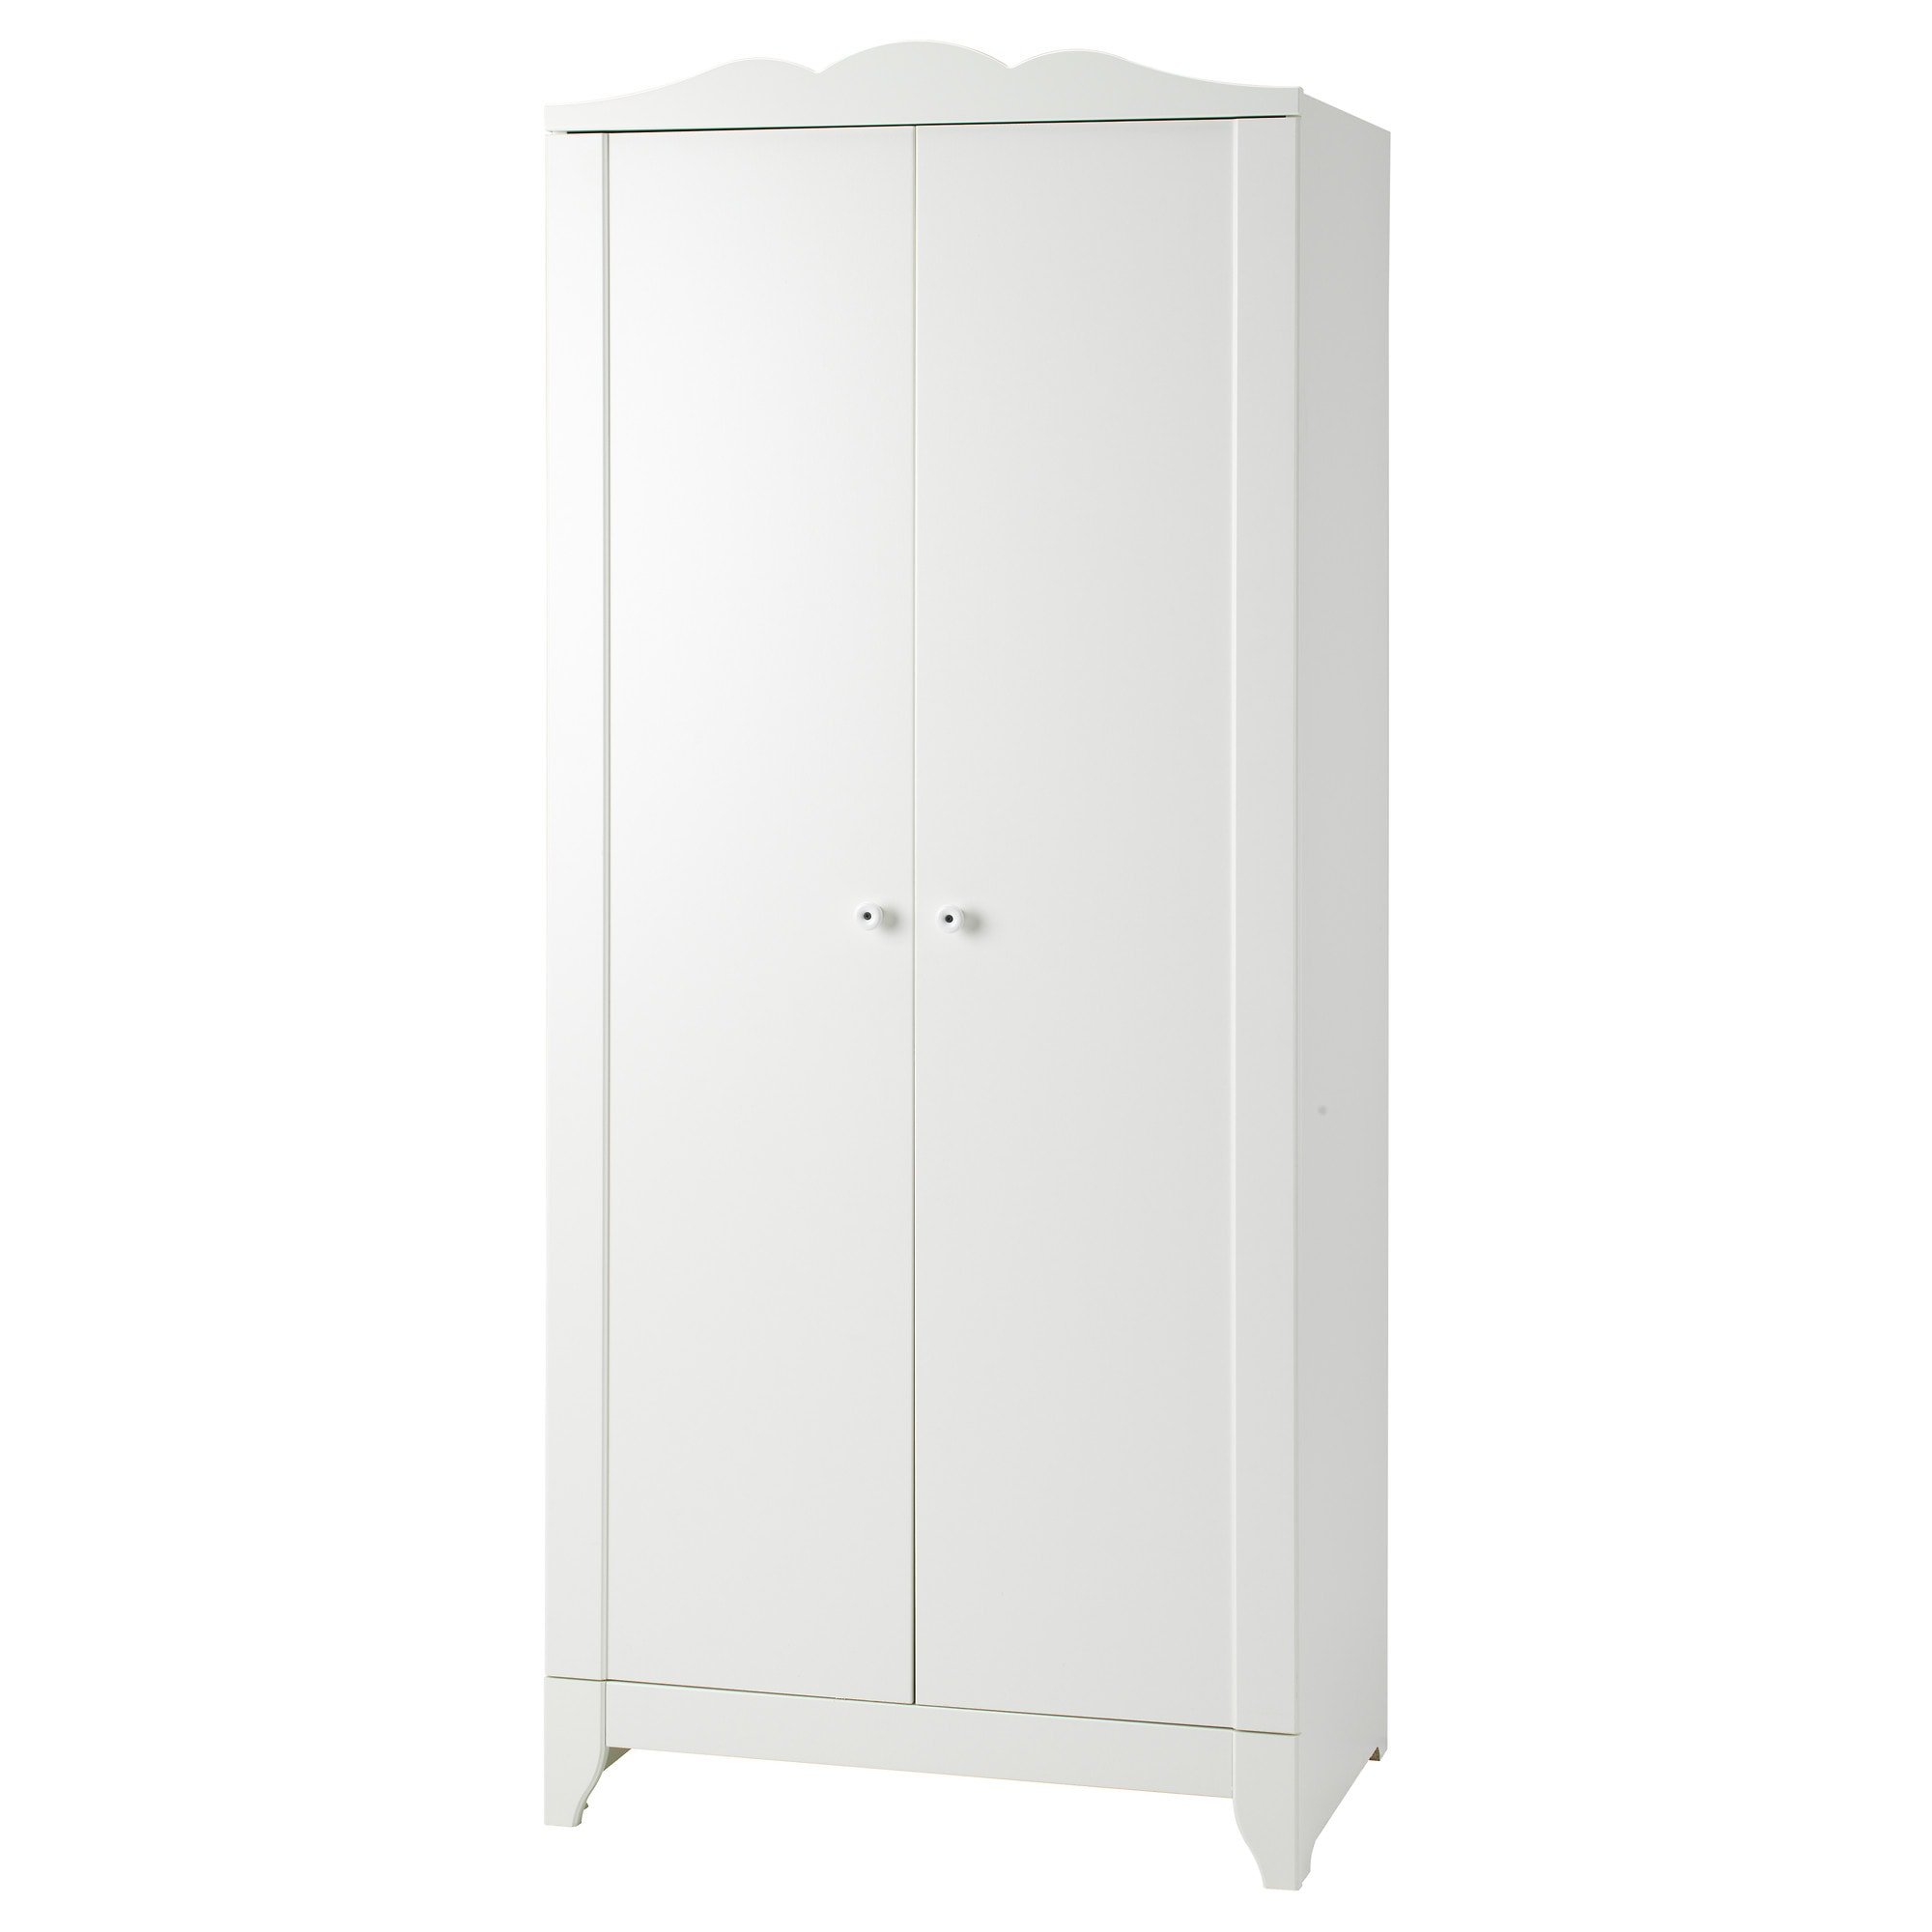 furniture armoire pdx shore south wardrobe white reviews wayfair acapella